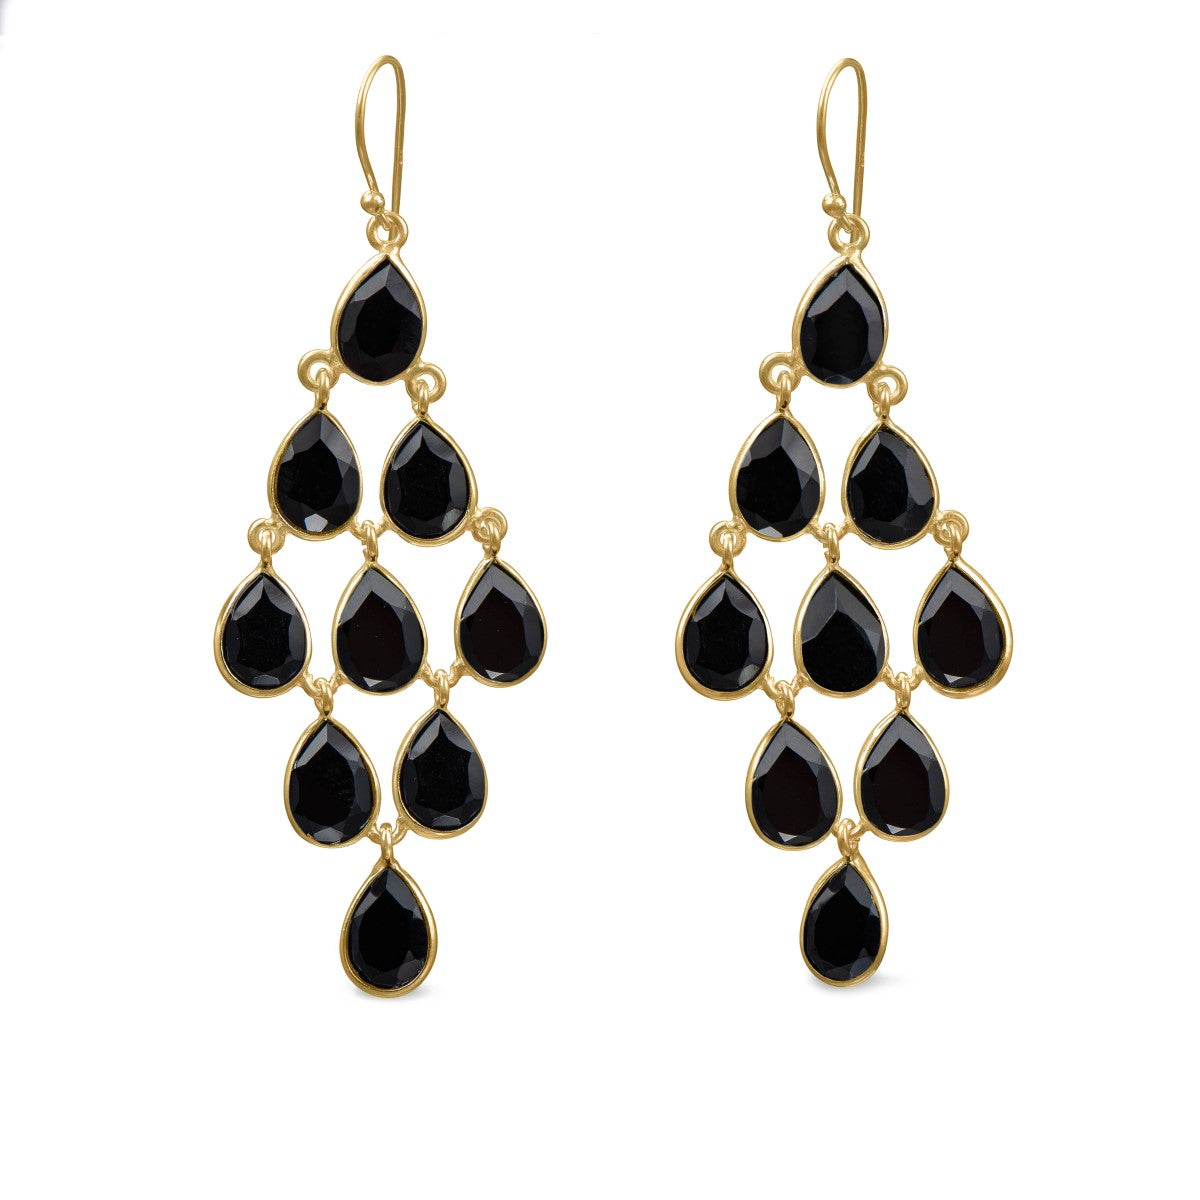 Gold Plated Sterling Silver Chandelier Earrings with Semi-Precious Stones - Black Onyx